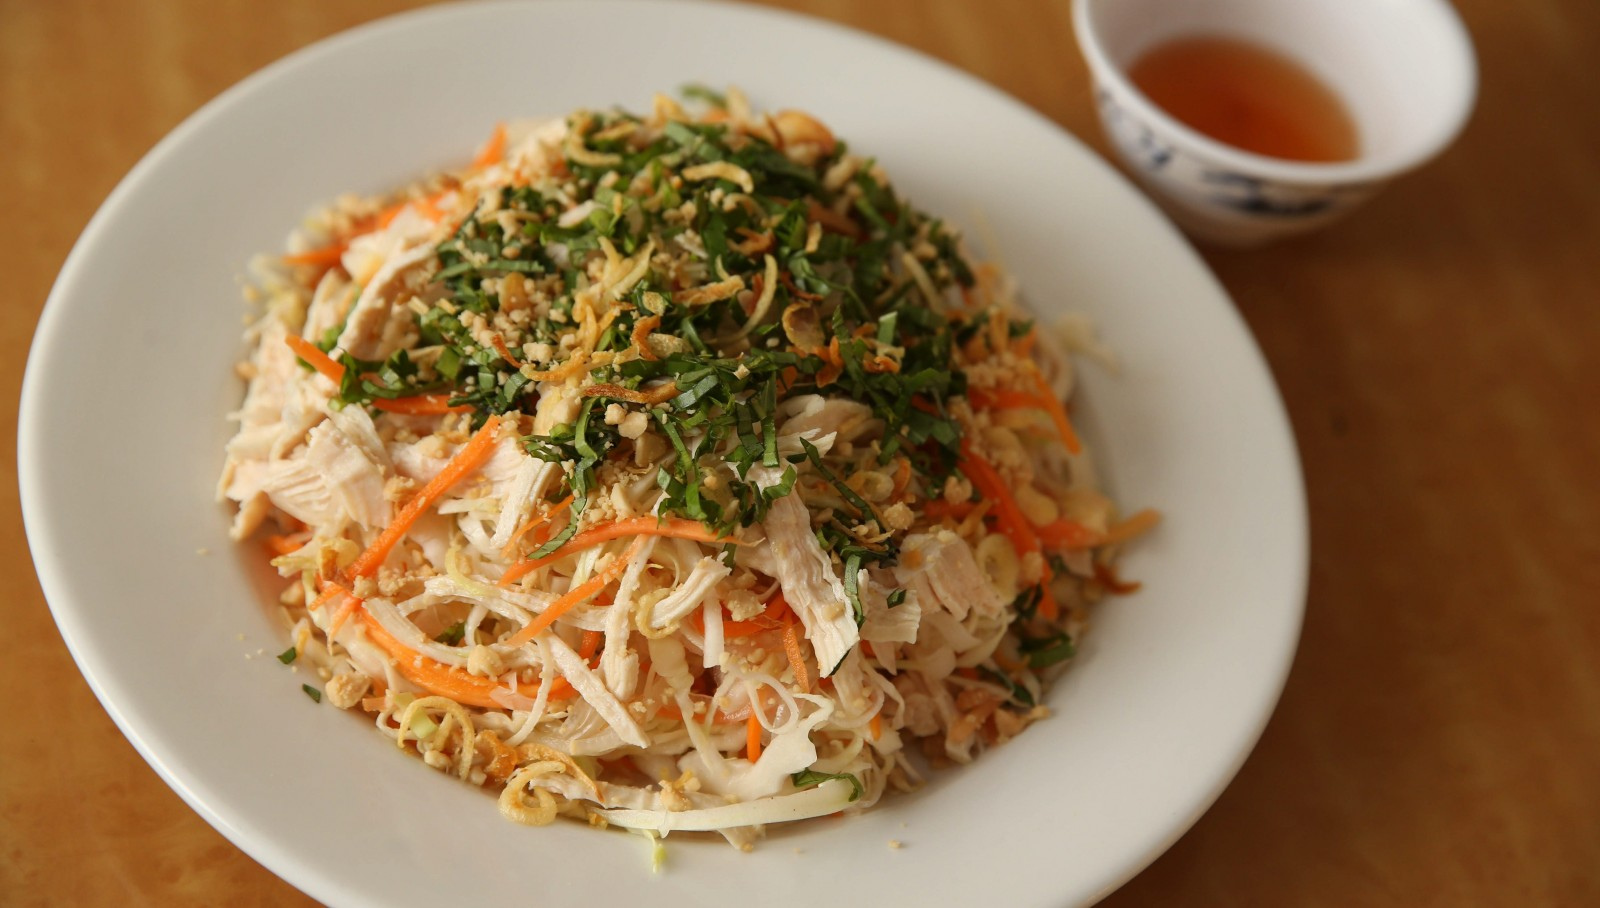 The Goi Ga at Pho Dollar is Vietnamese chicken salad with crispy raw vegetables in a tangy sauce of lime juice and vinegar. (Sharon Cantillon/Buffalo News)